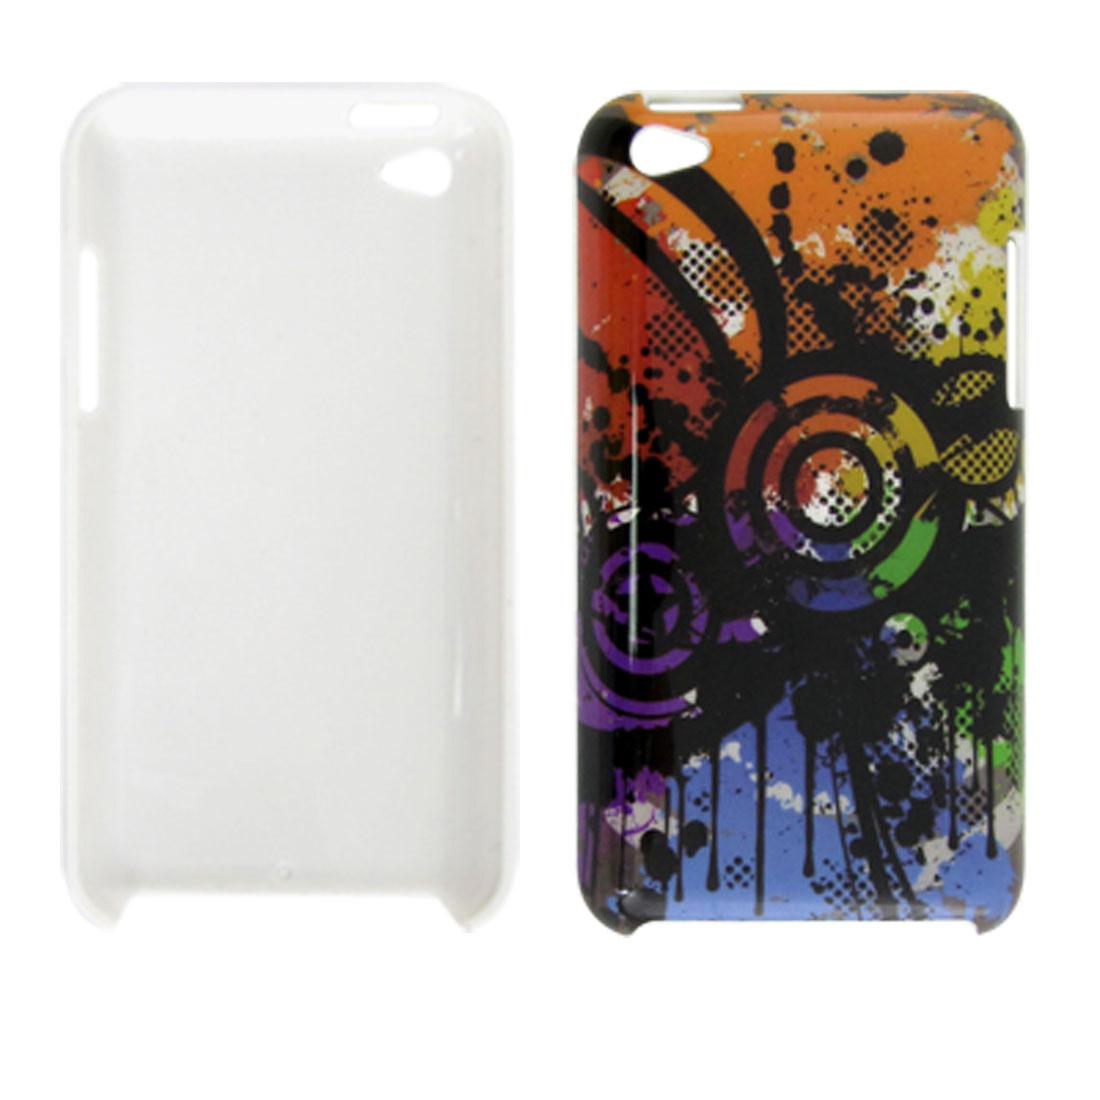 Hard Plastic IMD Non-mainstream Back Case for iPod Touch 4G